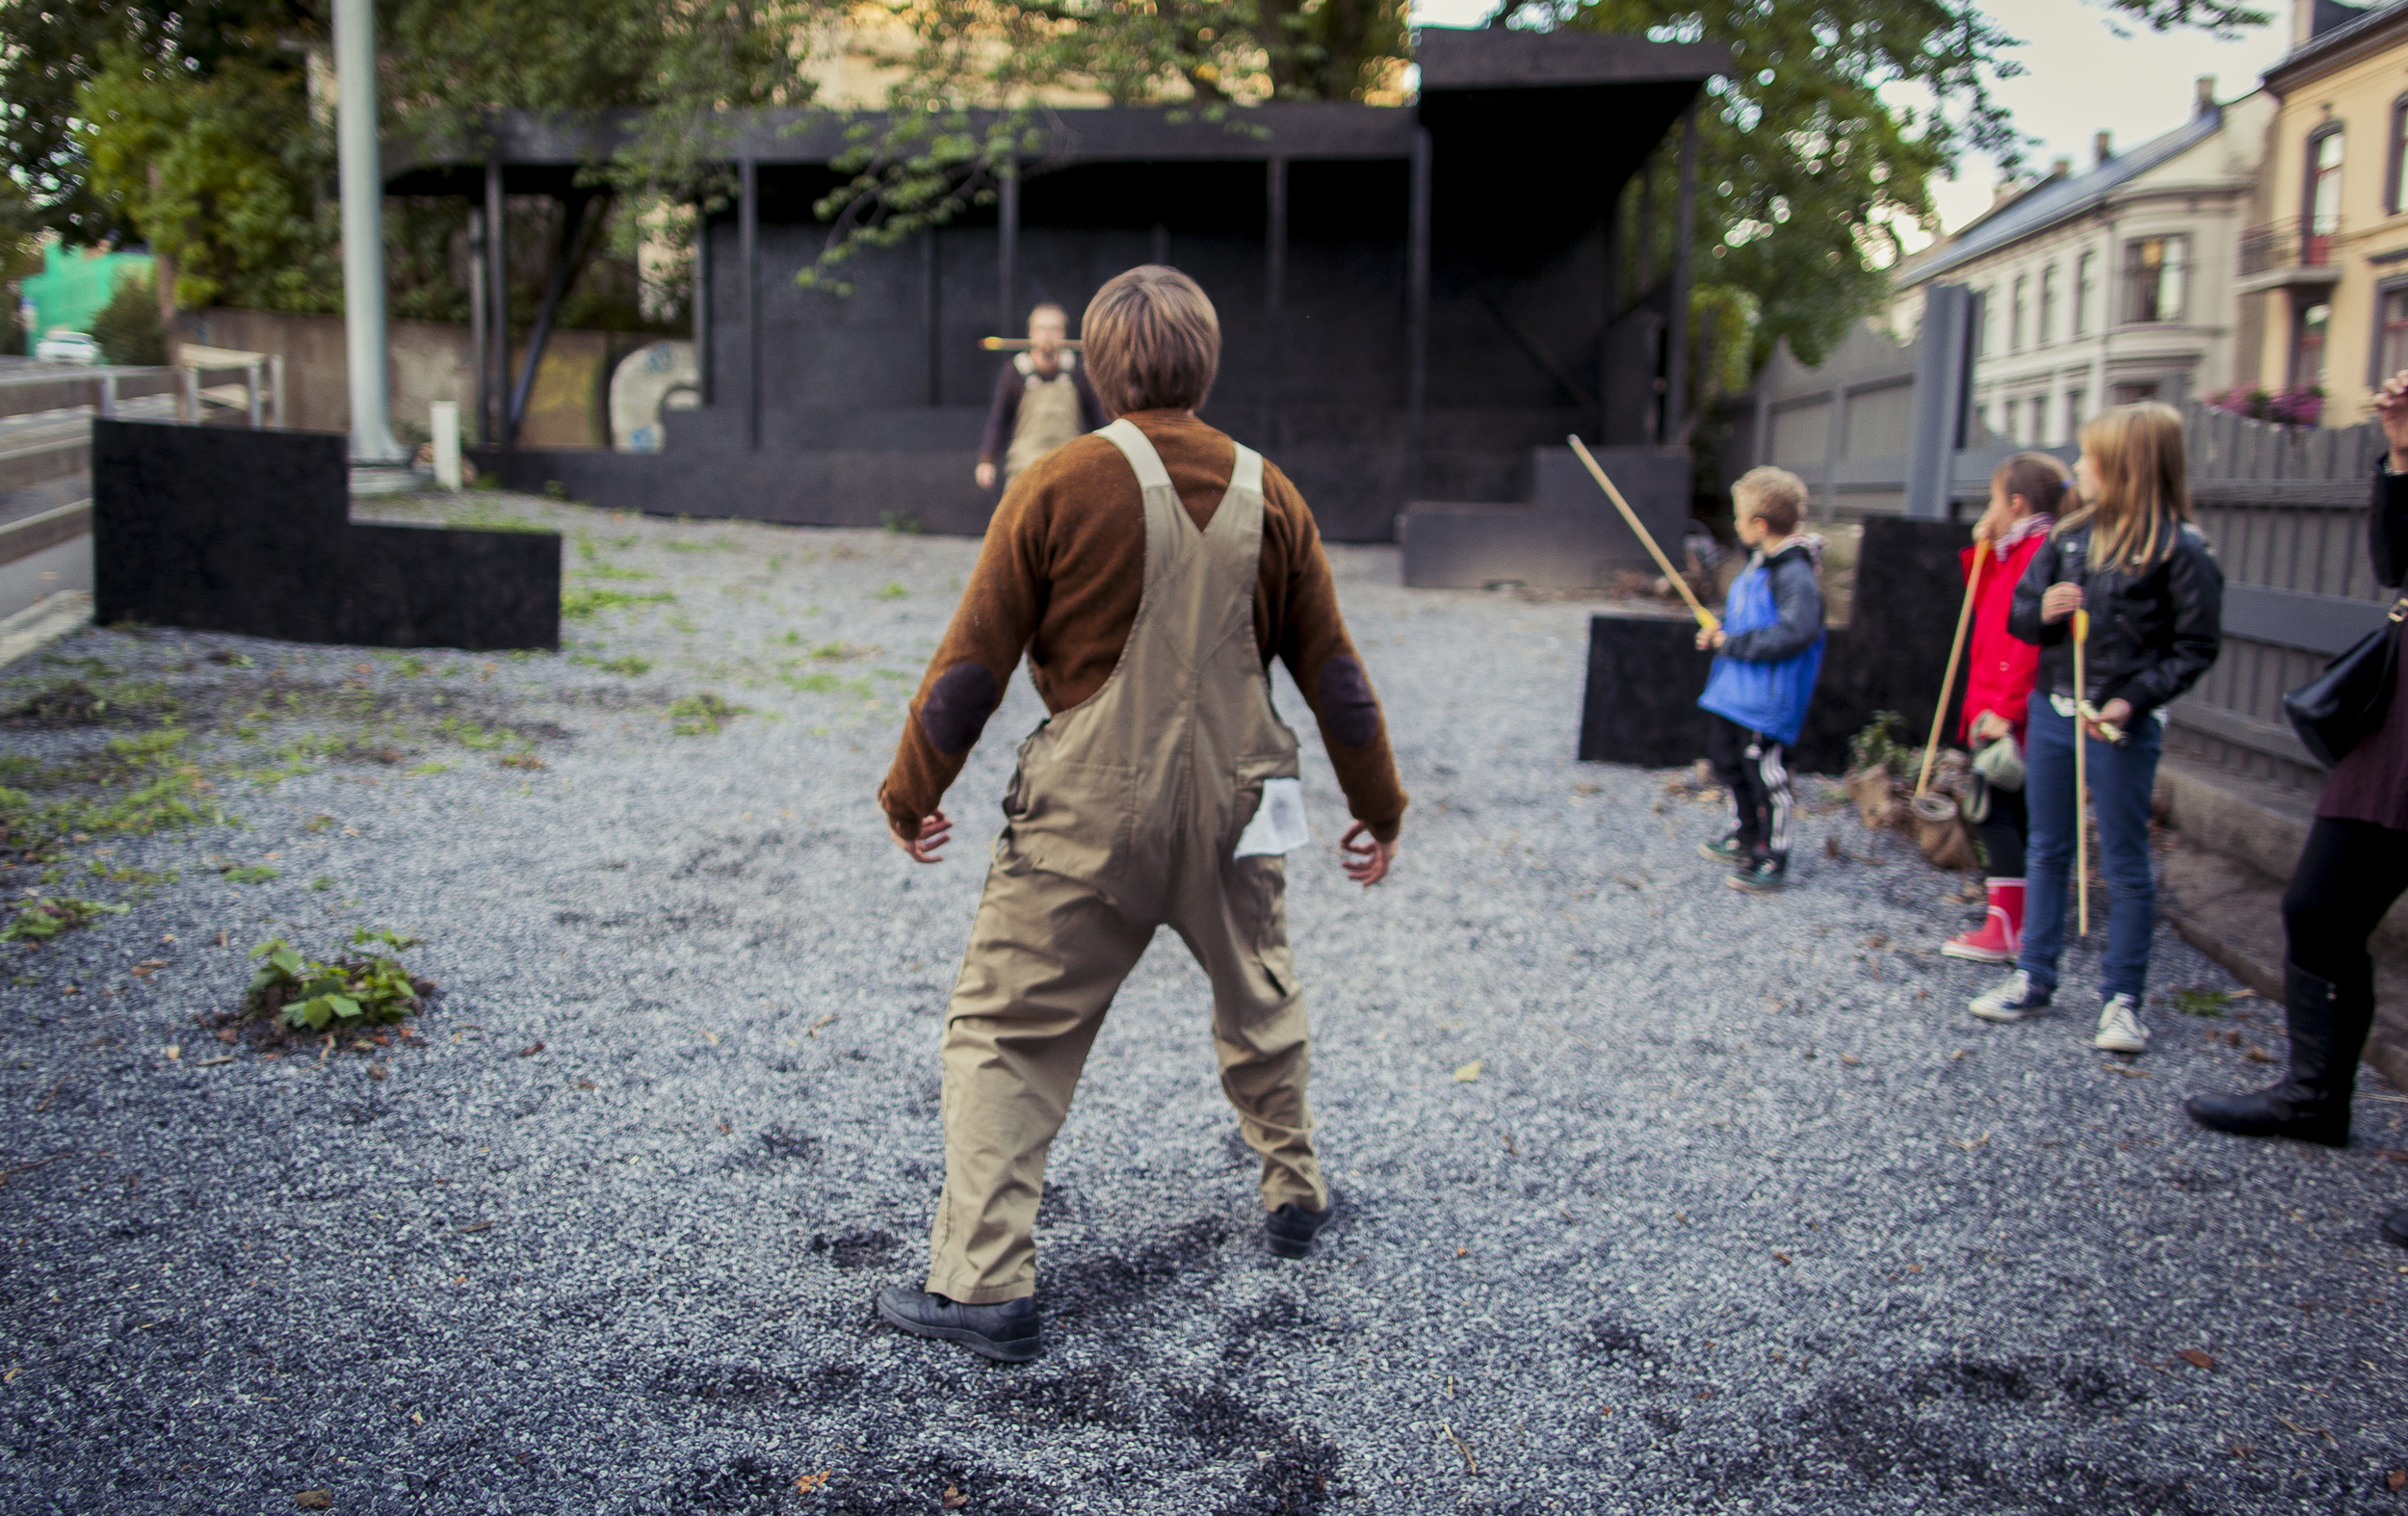 STASJON75 / Oslo   -local performance, Adamstuen-Oslo   with Gaute Askild Næsheim and Lasse Valdal.   The formerly emptiest point in the neighborhood has its very own performance, specifically made for this spot in particular, especially for 8-9 year olds.    Conceived and directed by Claire de Wangen - Photography: Morten Bendiksen    #clairedewangen #performance #oslo #adamstuen #mortenbendiksen